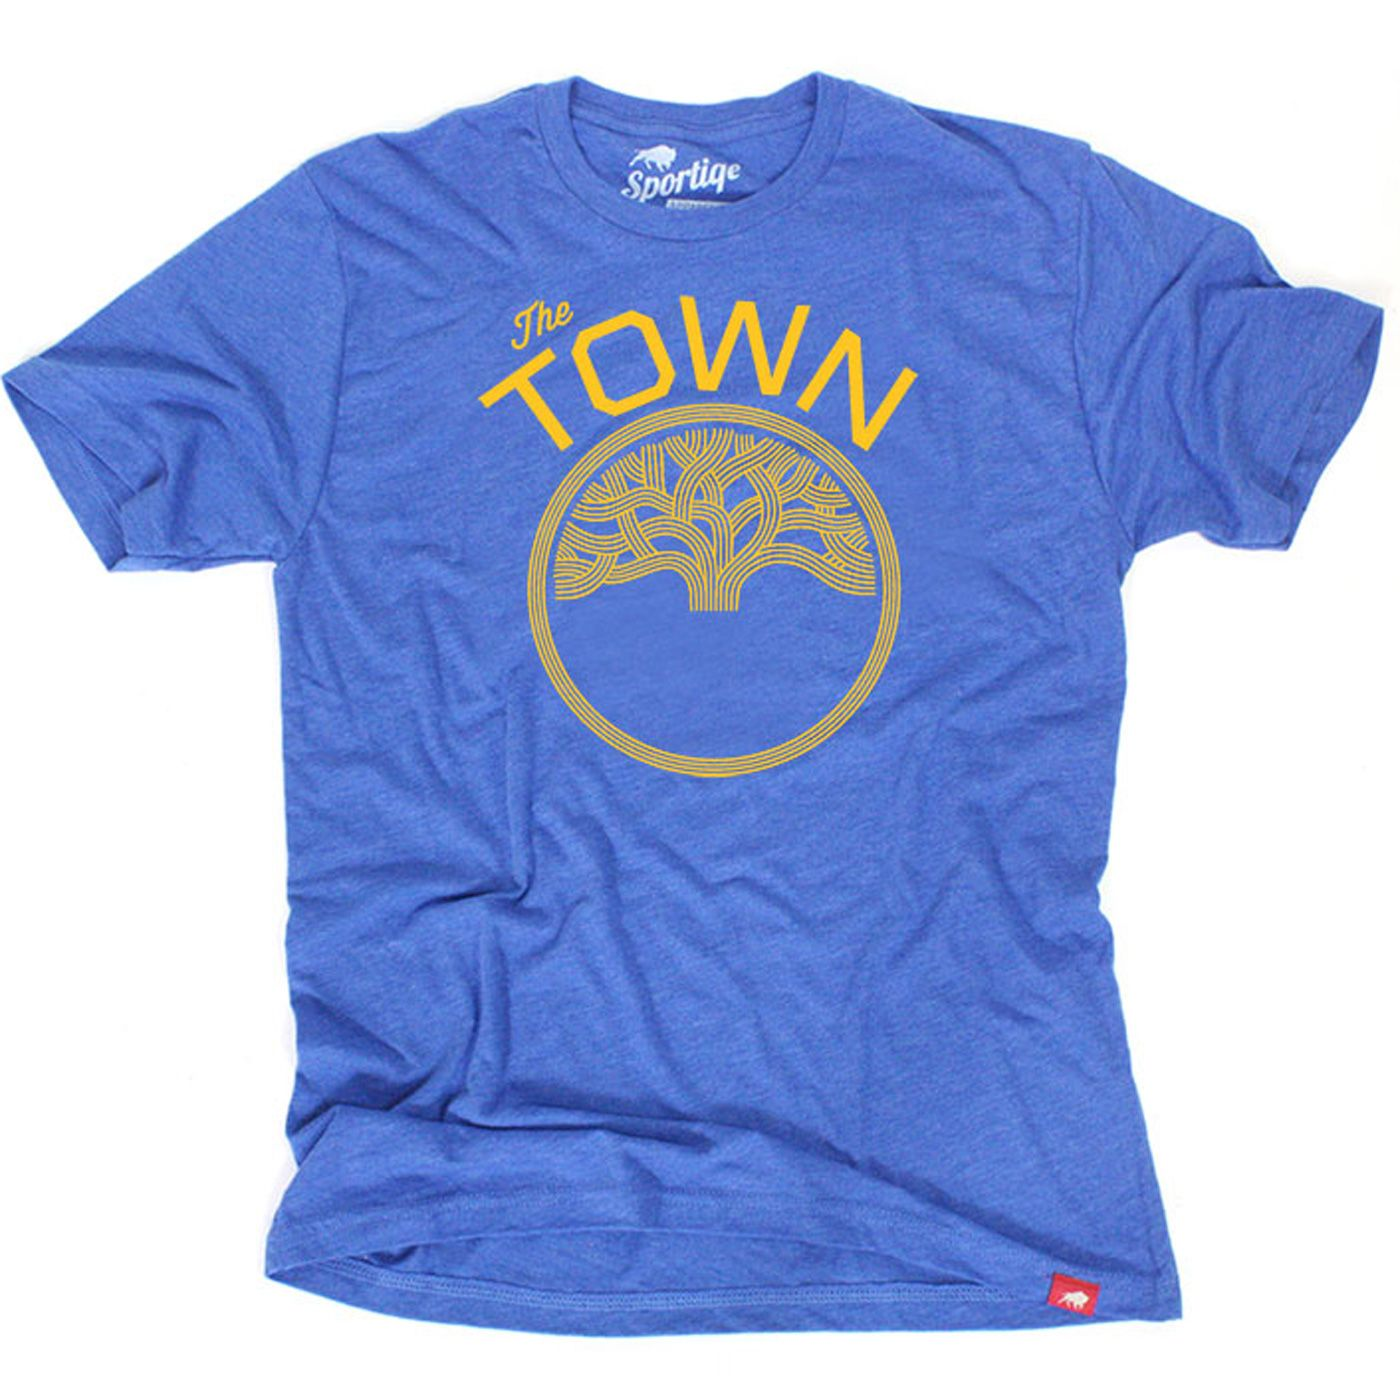 8277f9a12 <p>The Golden State Warriors are proud to present 'The Town' Statement  Edition apparel collection for the 2017-2018 season! Pull on this soft and  comfy ...